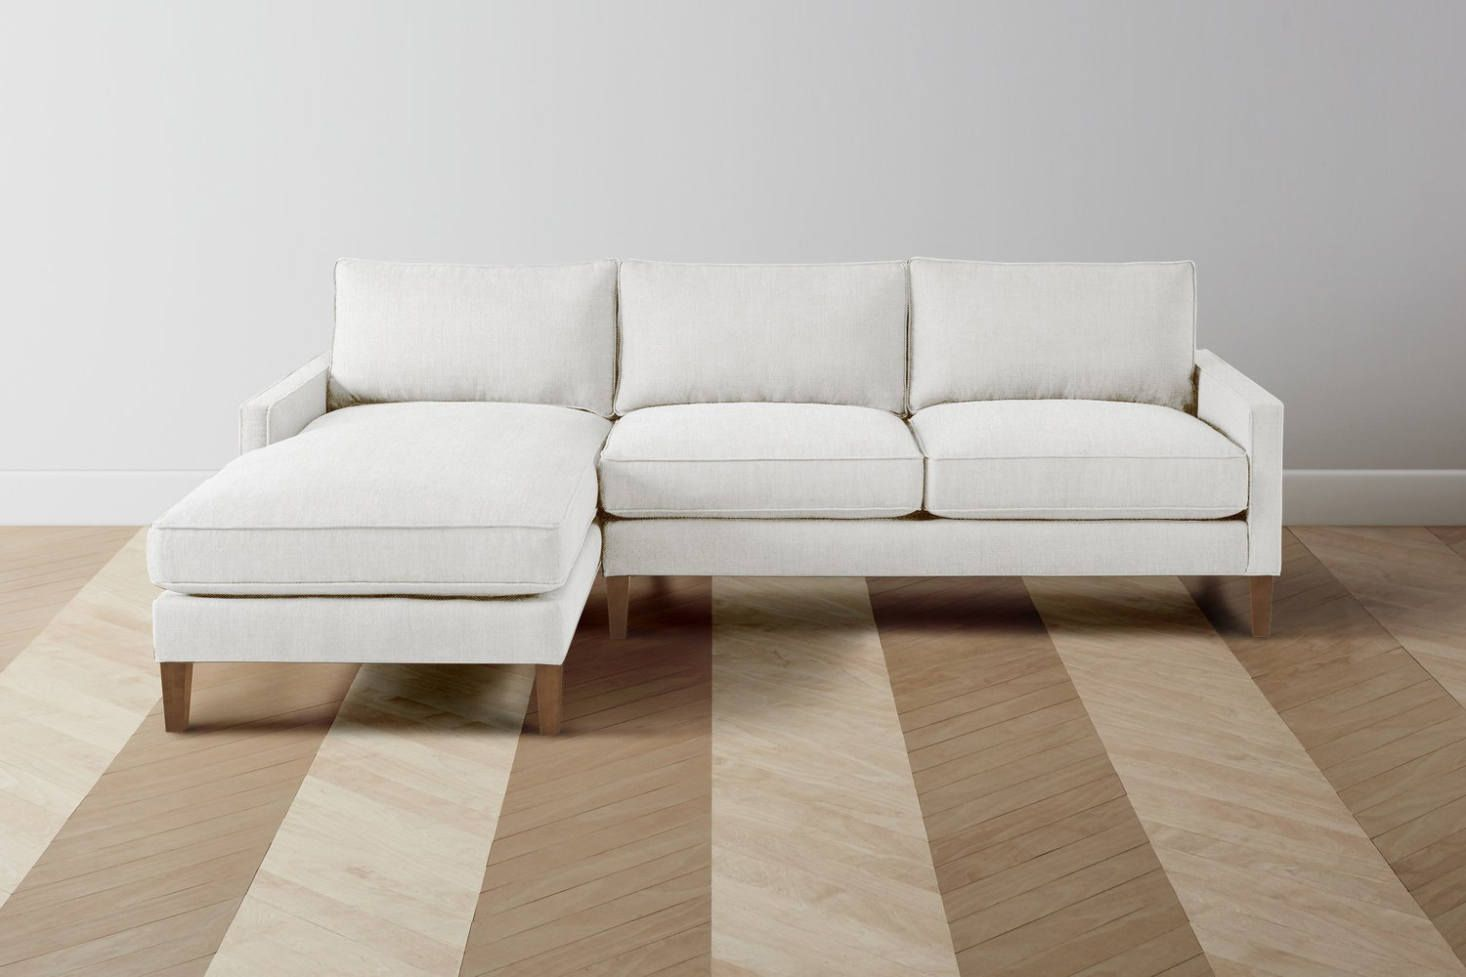 10 Easy Pieces Sectional Chaise Sofas Sectional Chaise